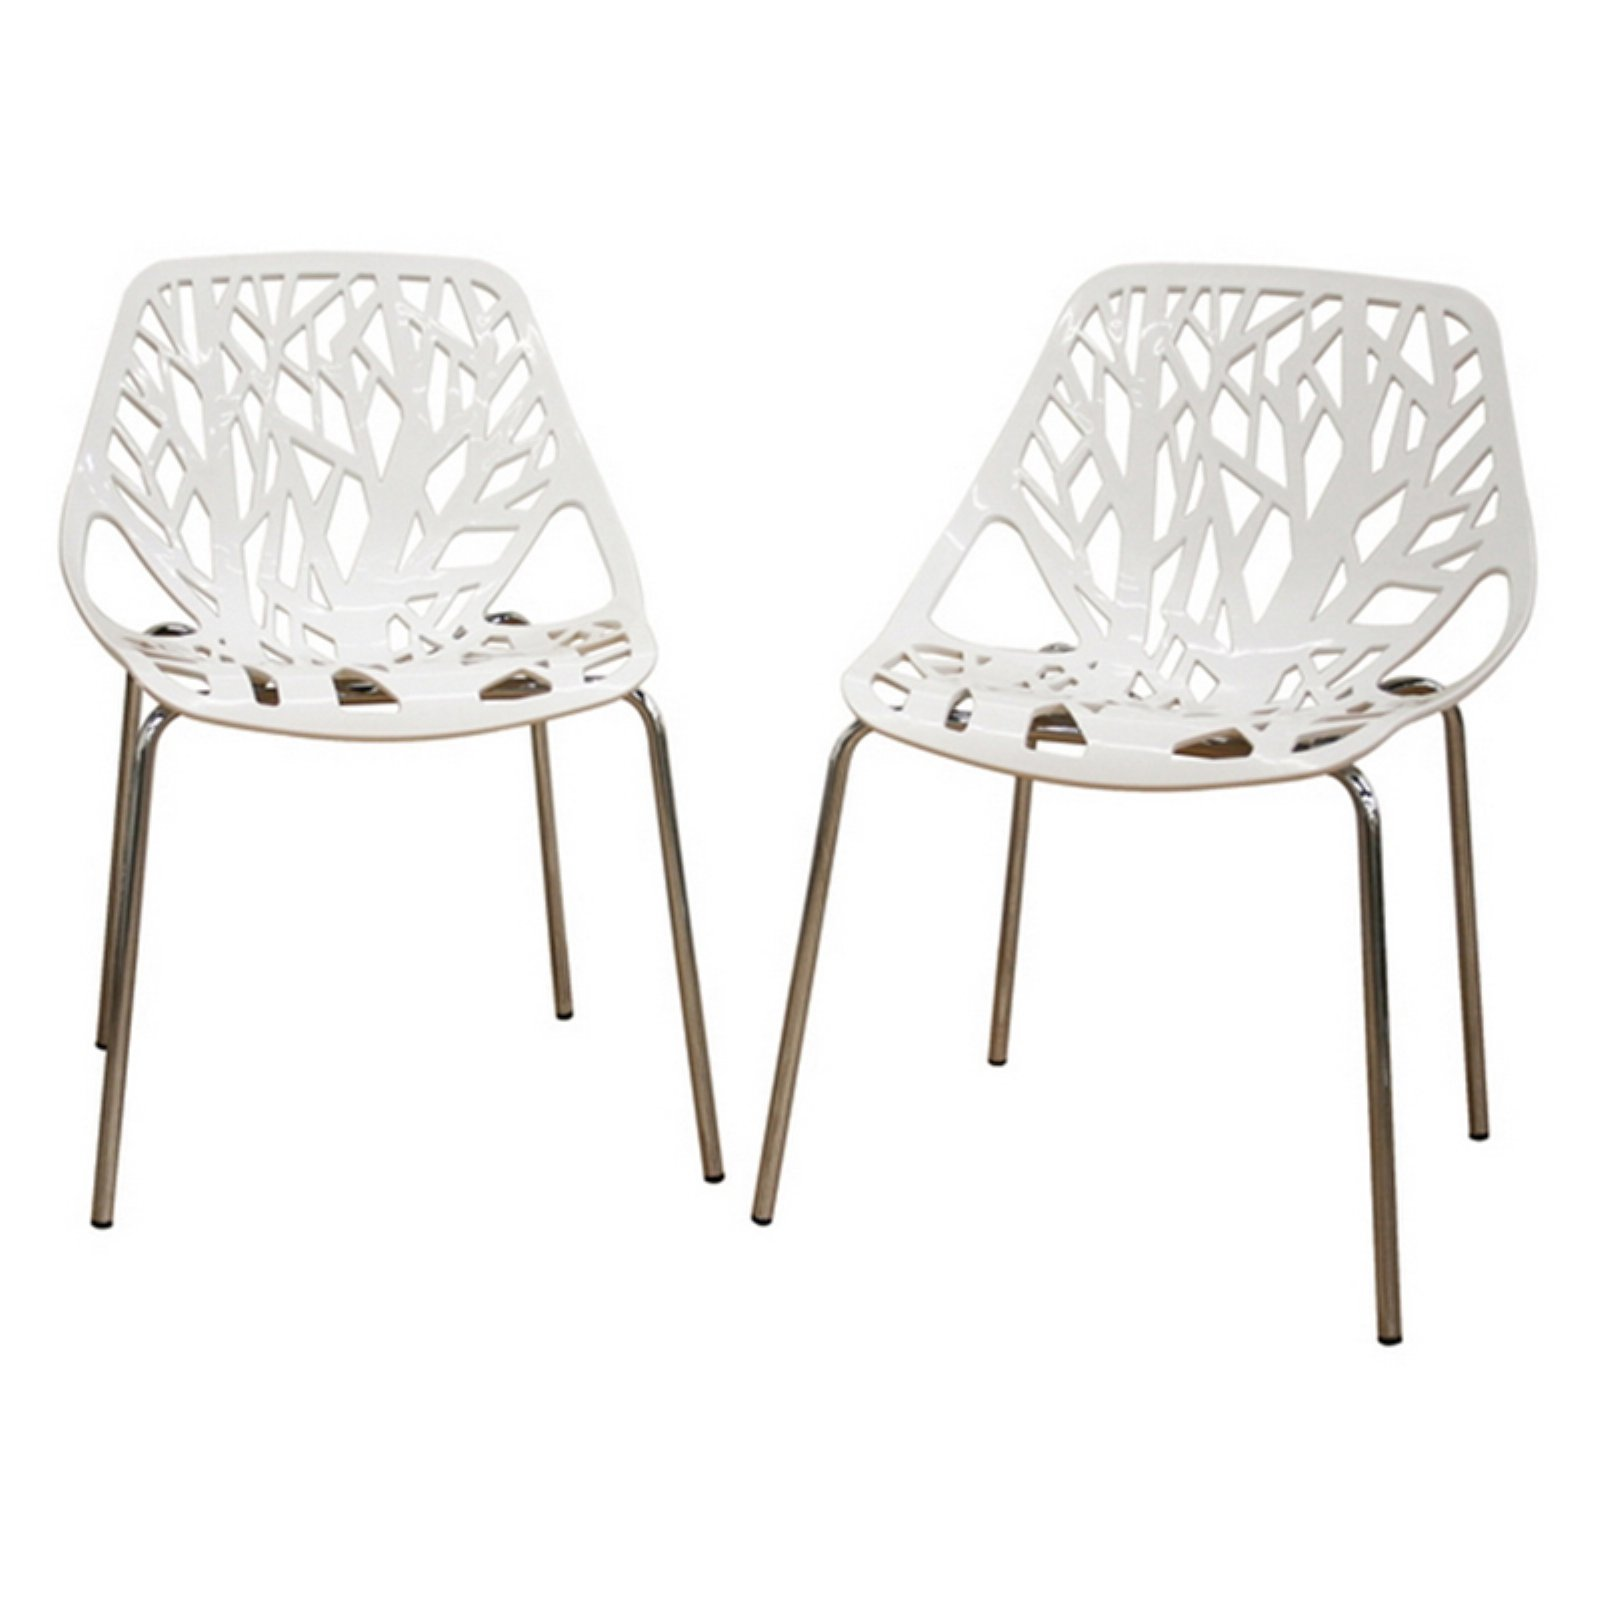 Baxton Studio Birch Sapling Dining Chair by Wholesale Interiors